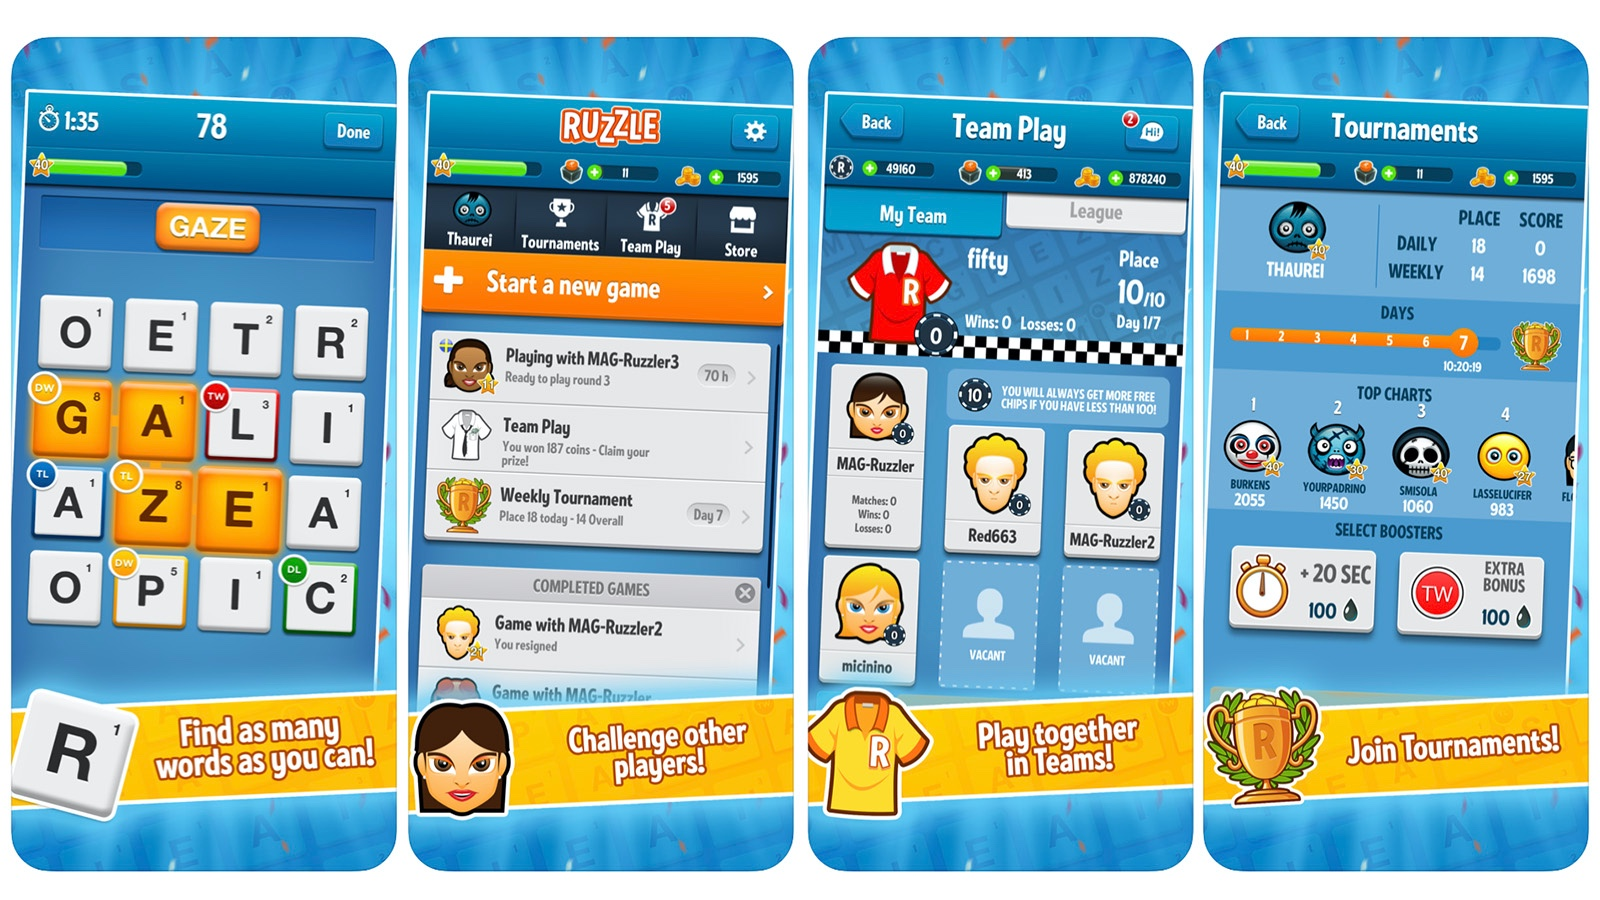 Ruzzle game screenshot